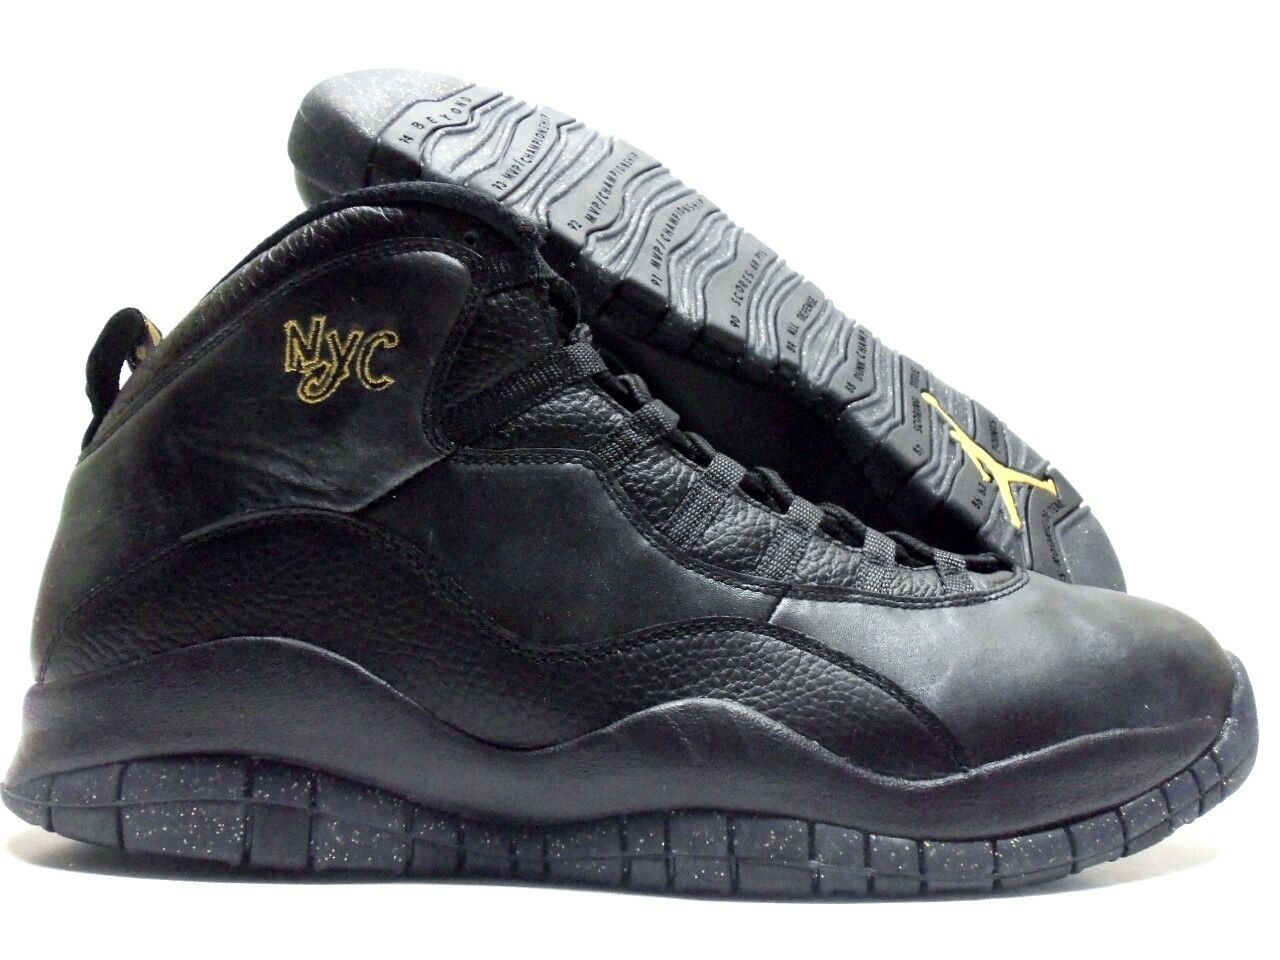 NIKE AIR JORDAN RETRO 10  NYC  BLACK GREY-METALLIC gold SZ MEN'S 16 [310805-012]